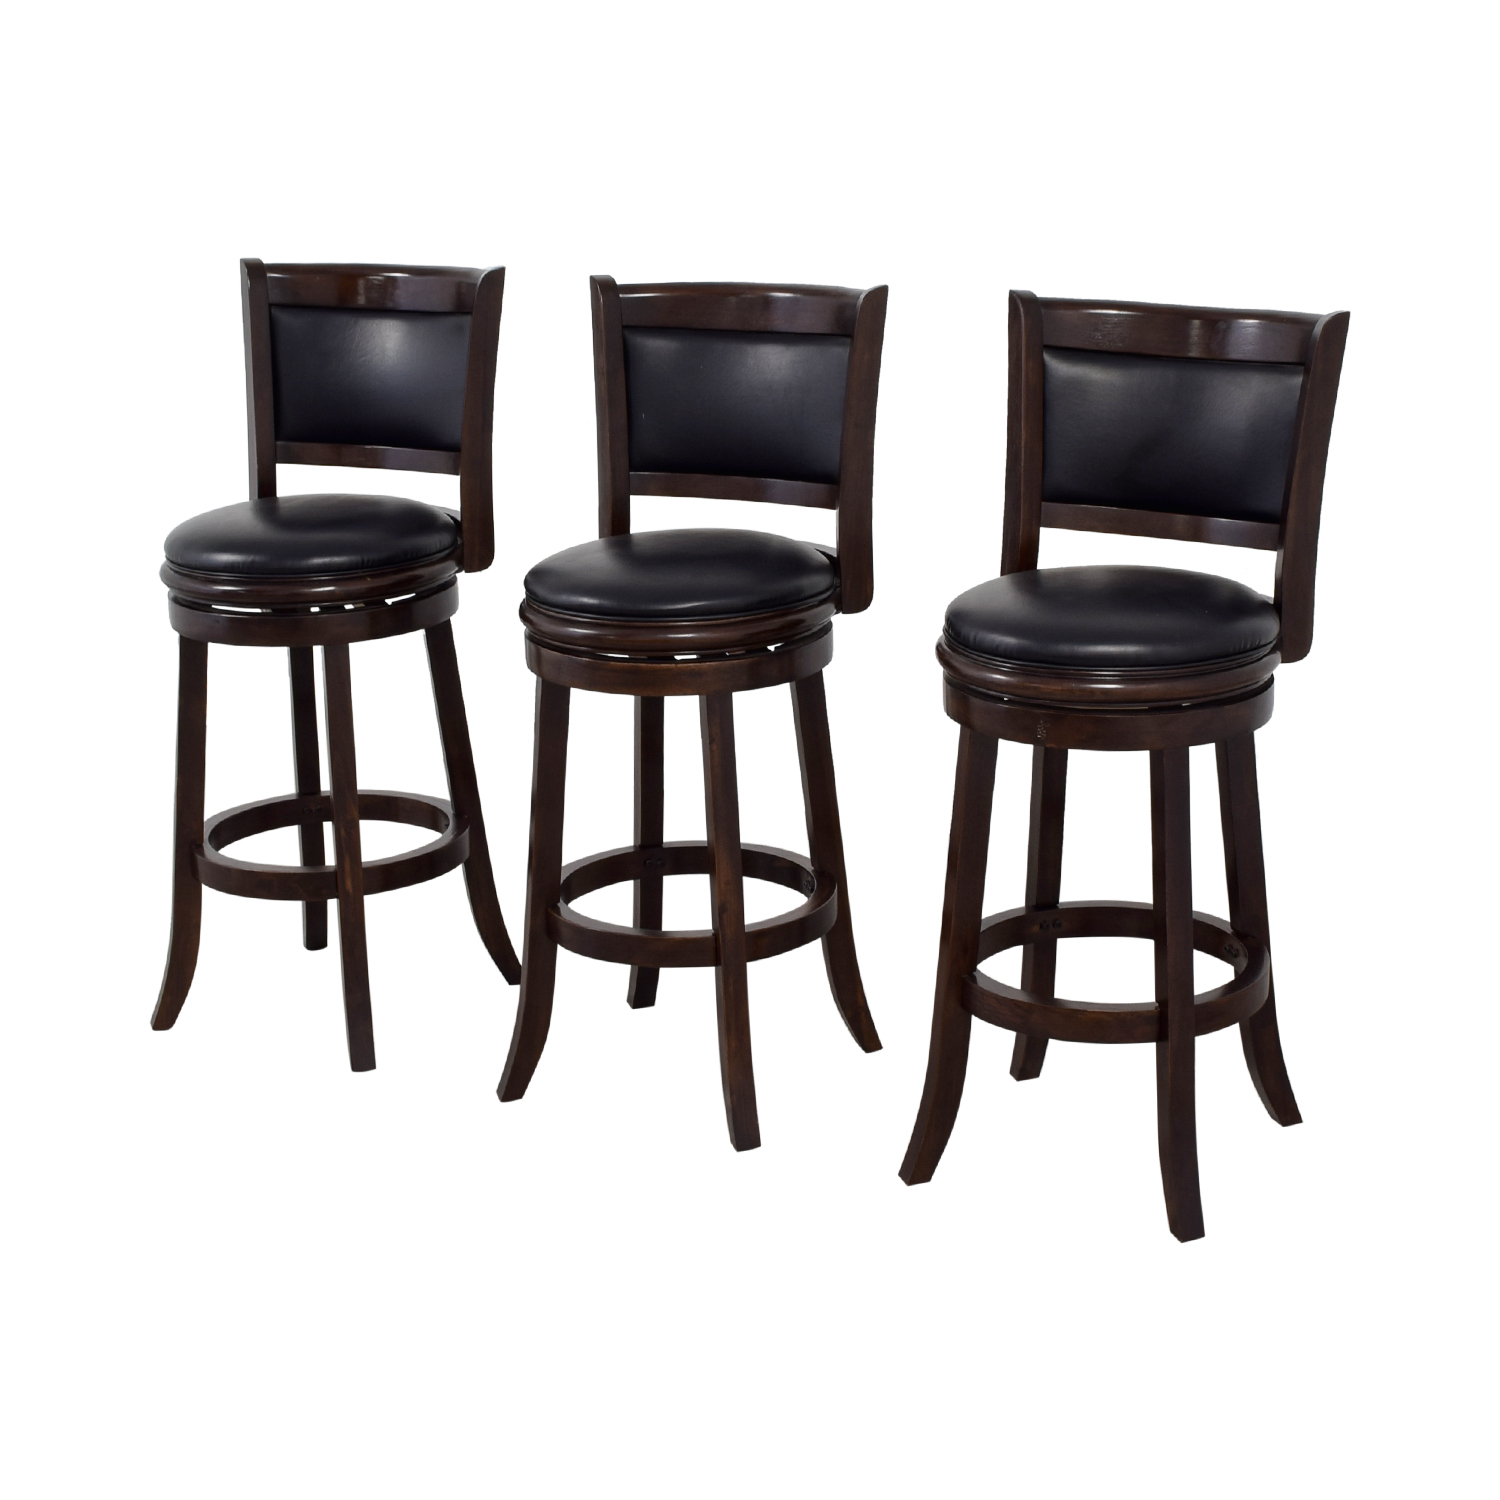 Raymour And Flanigan Chairs: Raymour & Flanigan Raymour & Flanigan Bar Stools